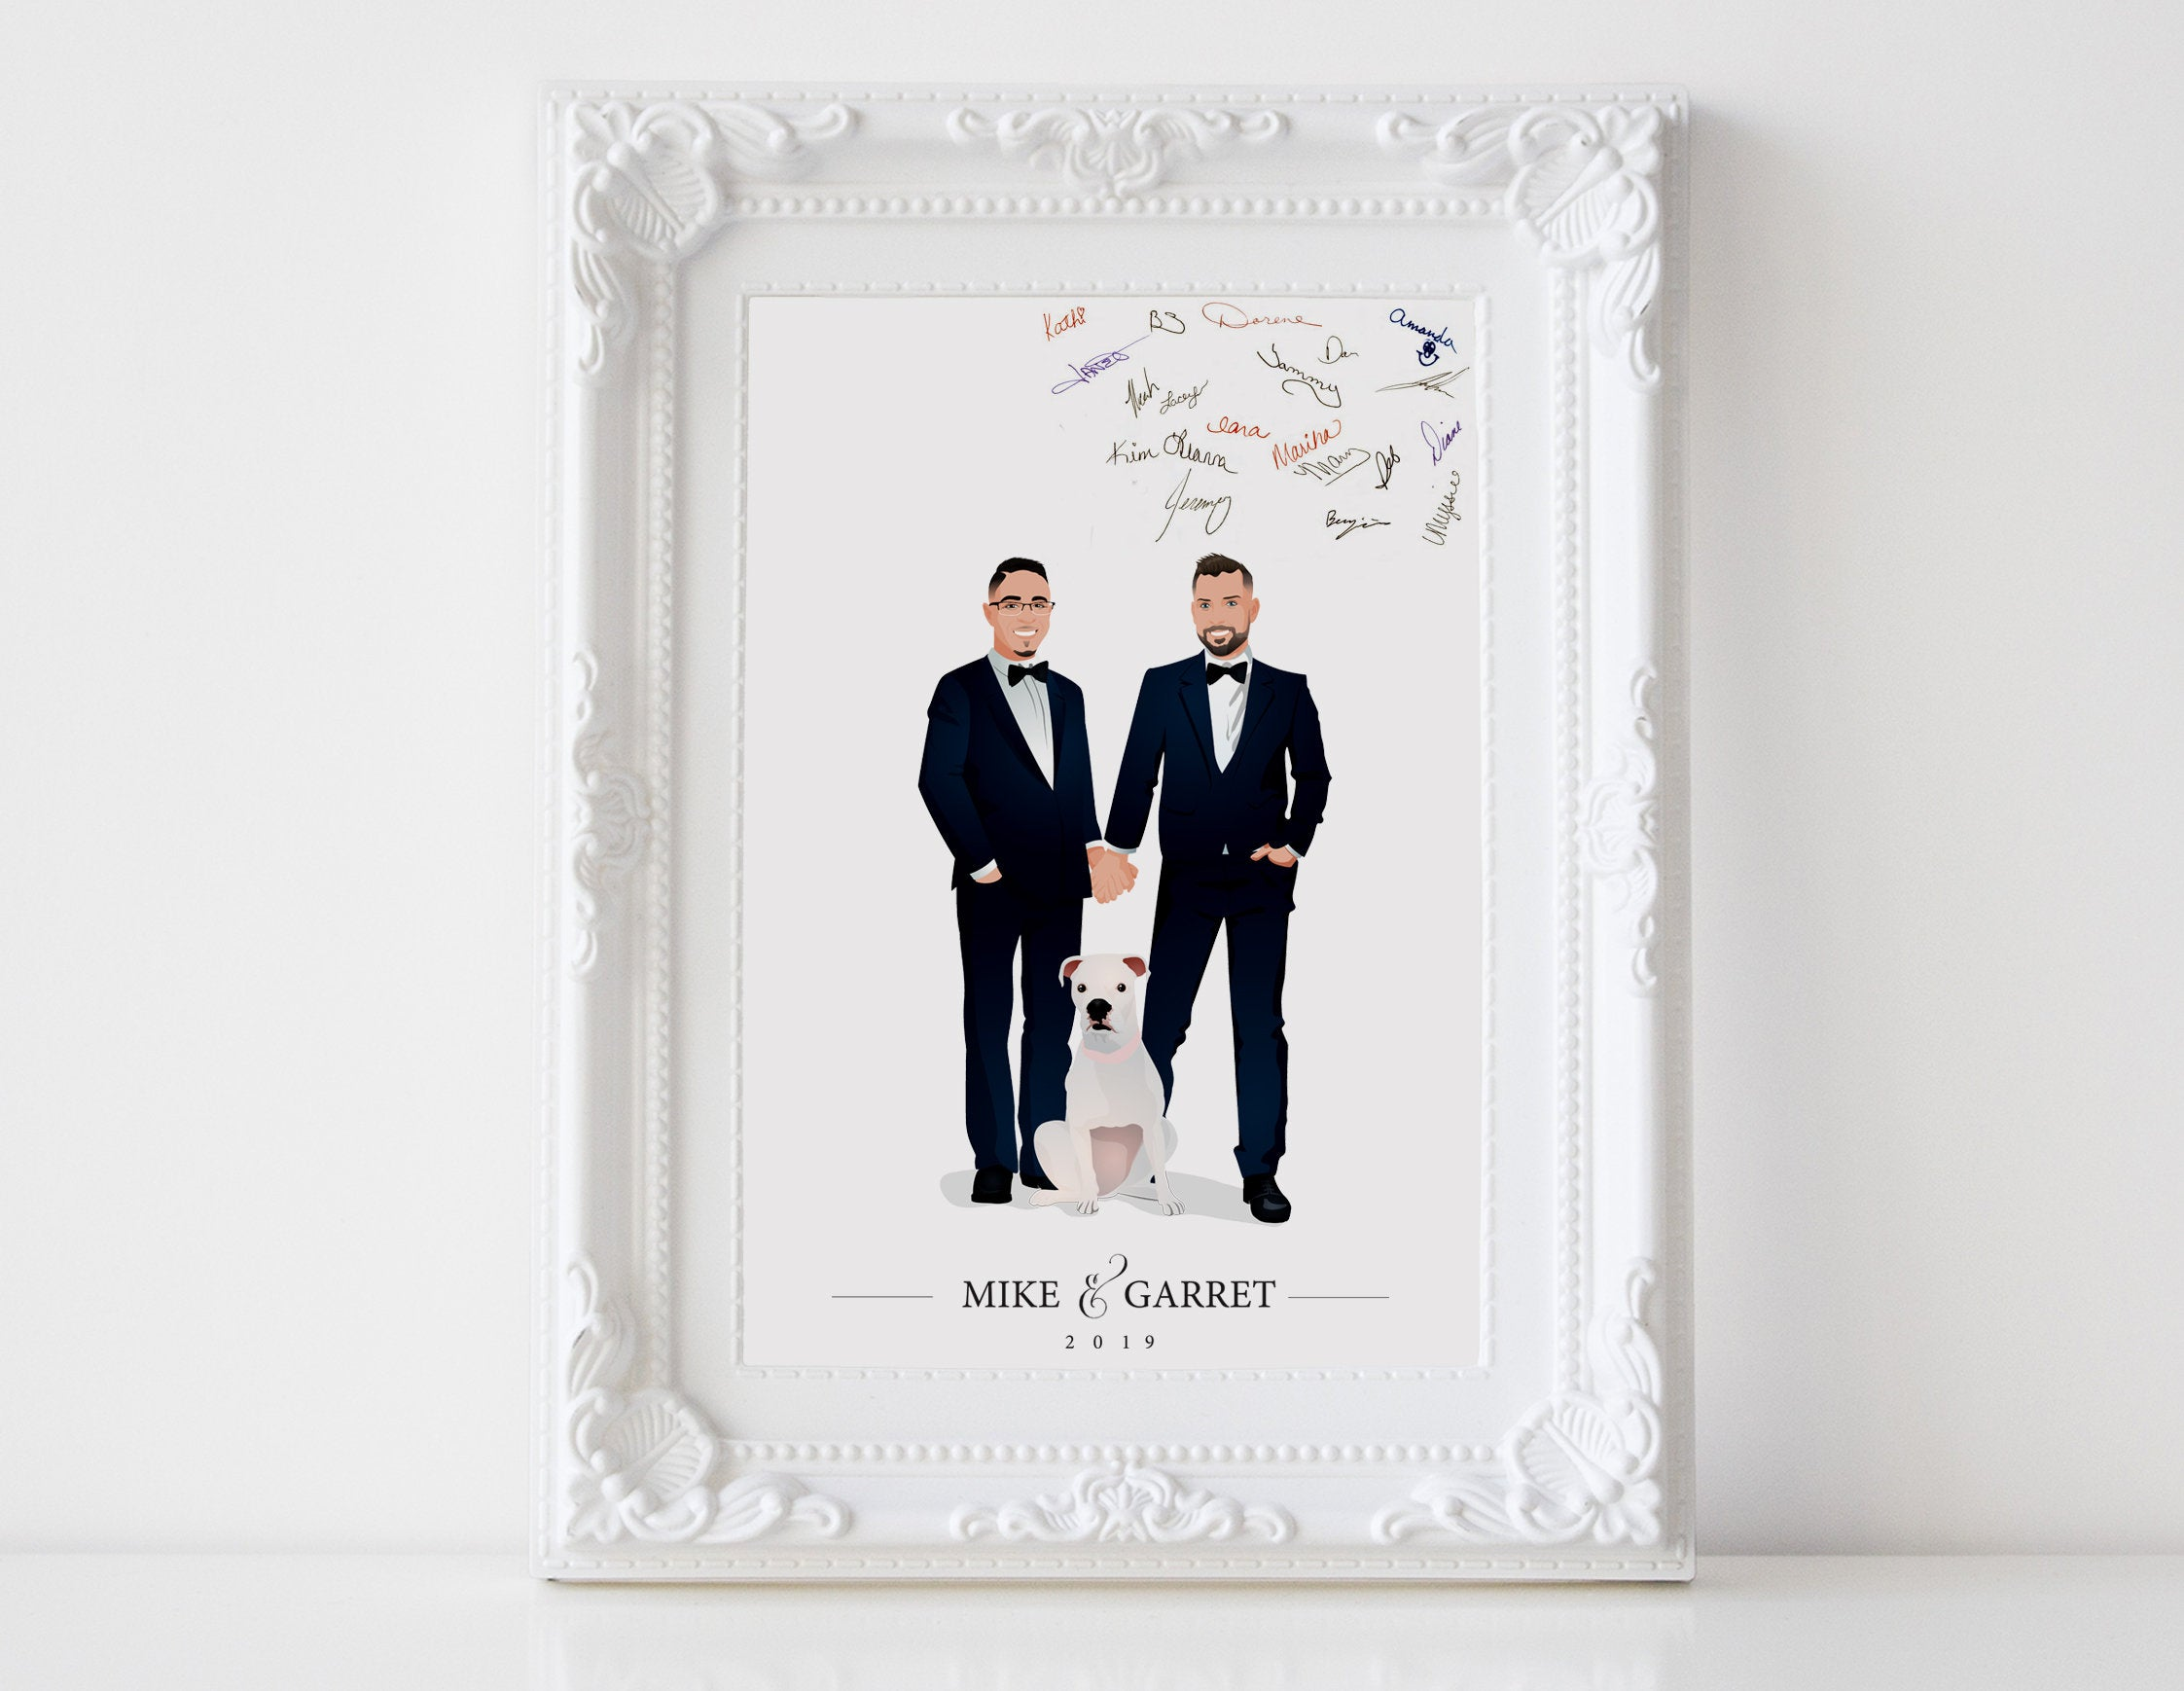 Custom Illustration Wedding Couple Family Portrait Guestbook Poster by xoBSpoke